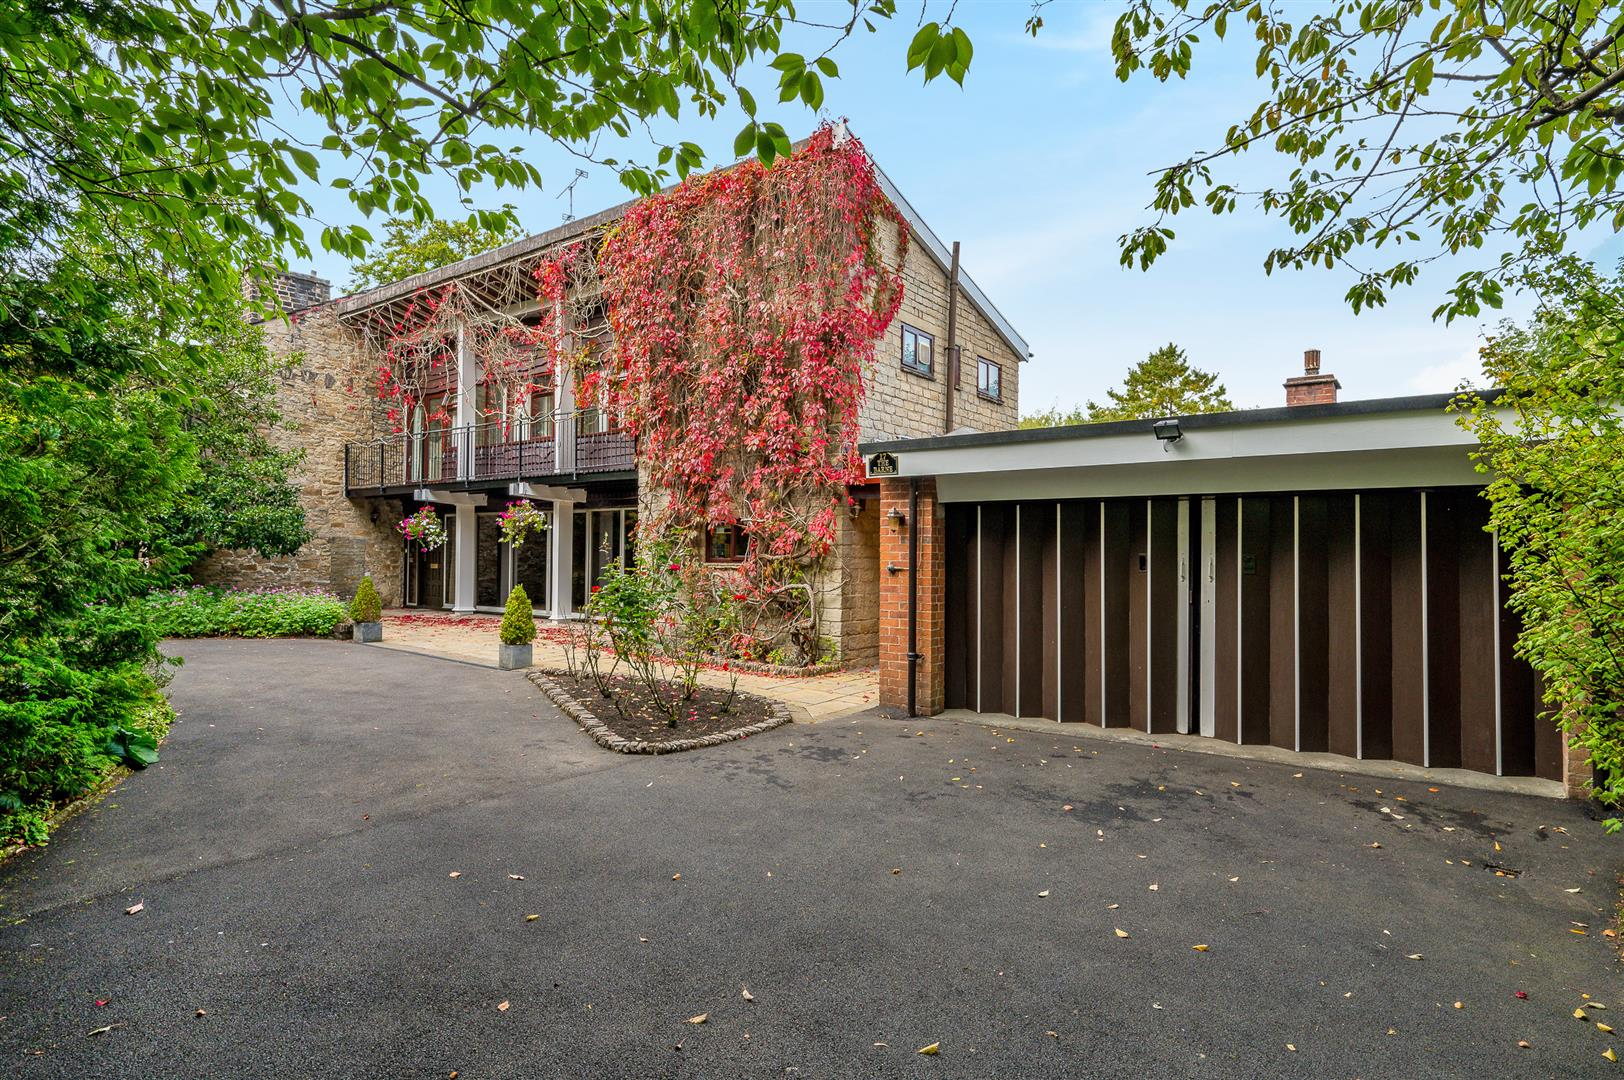 4 bedroom house For Sale in Bolton - Main Image.